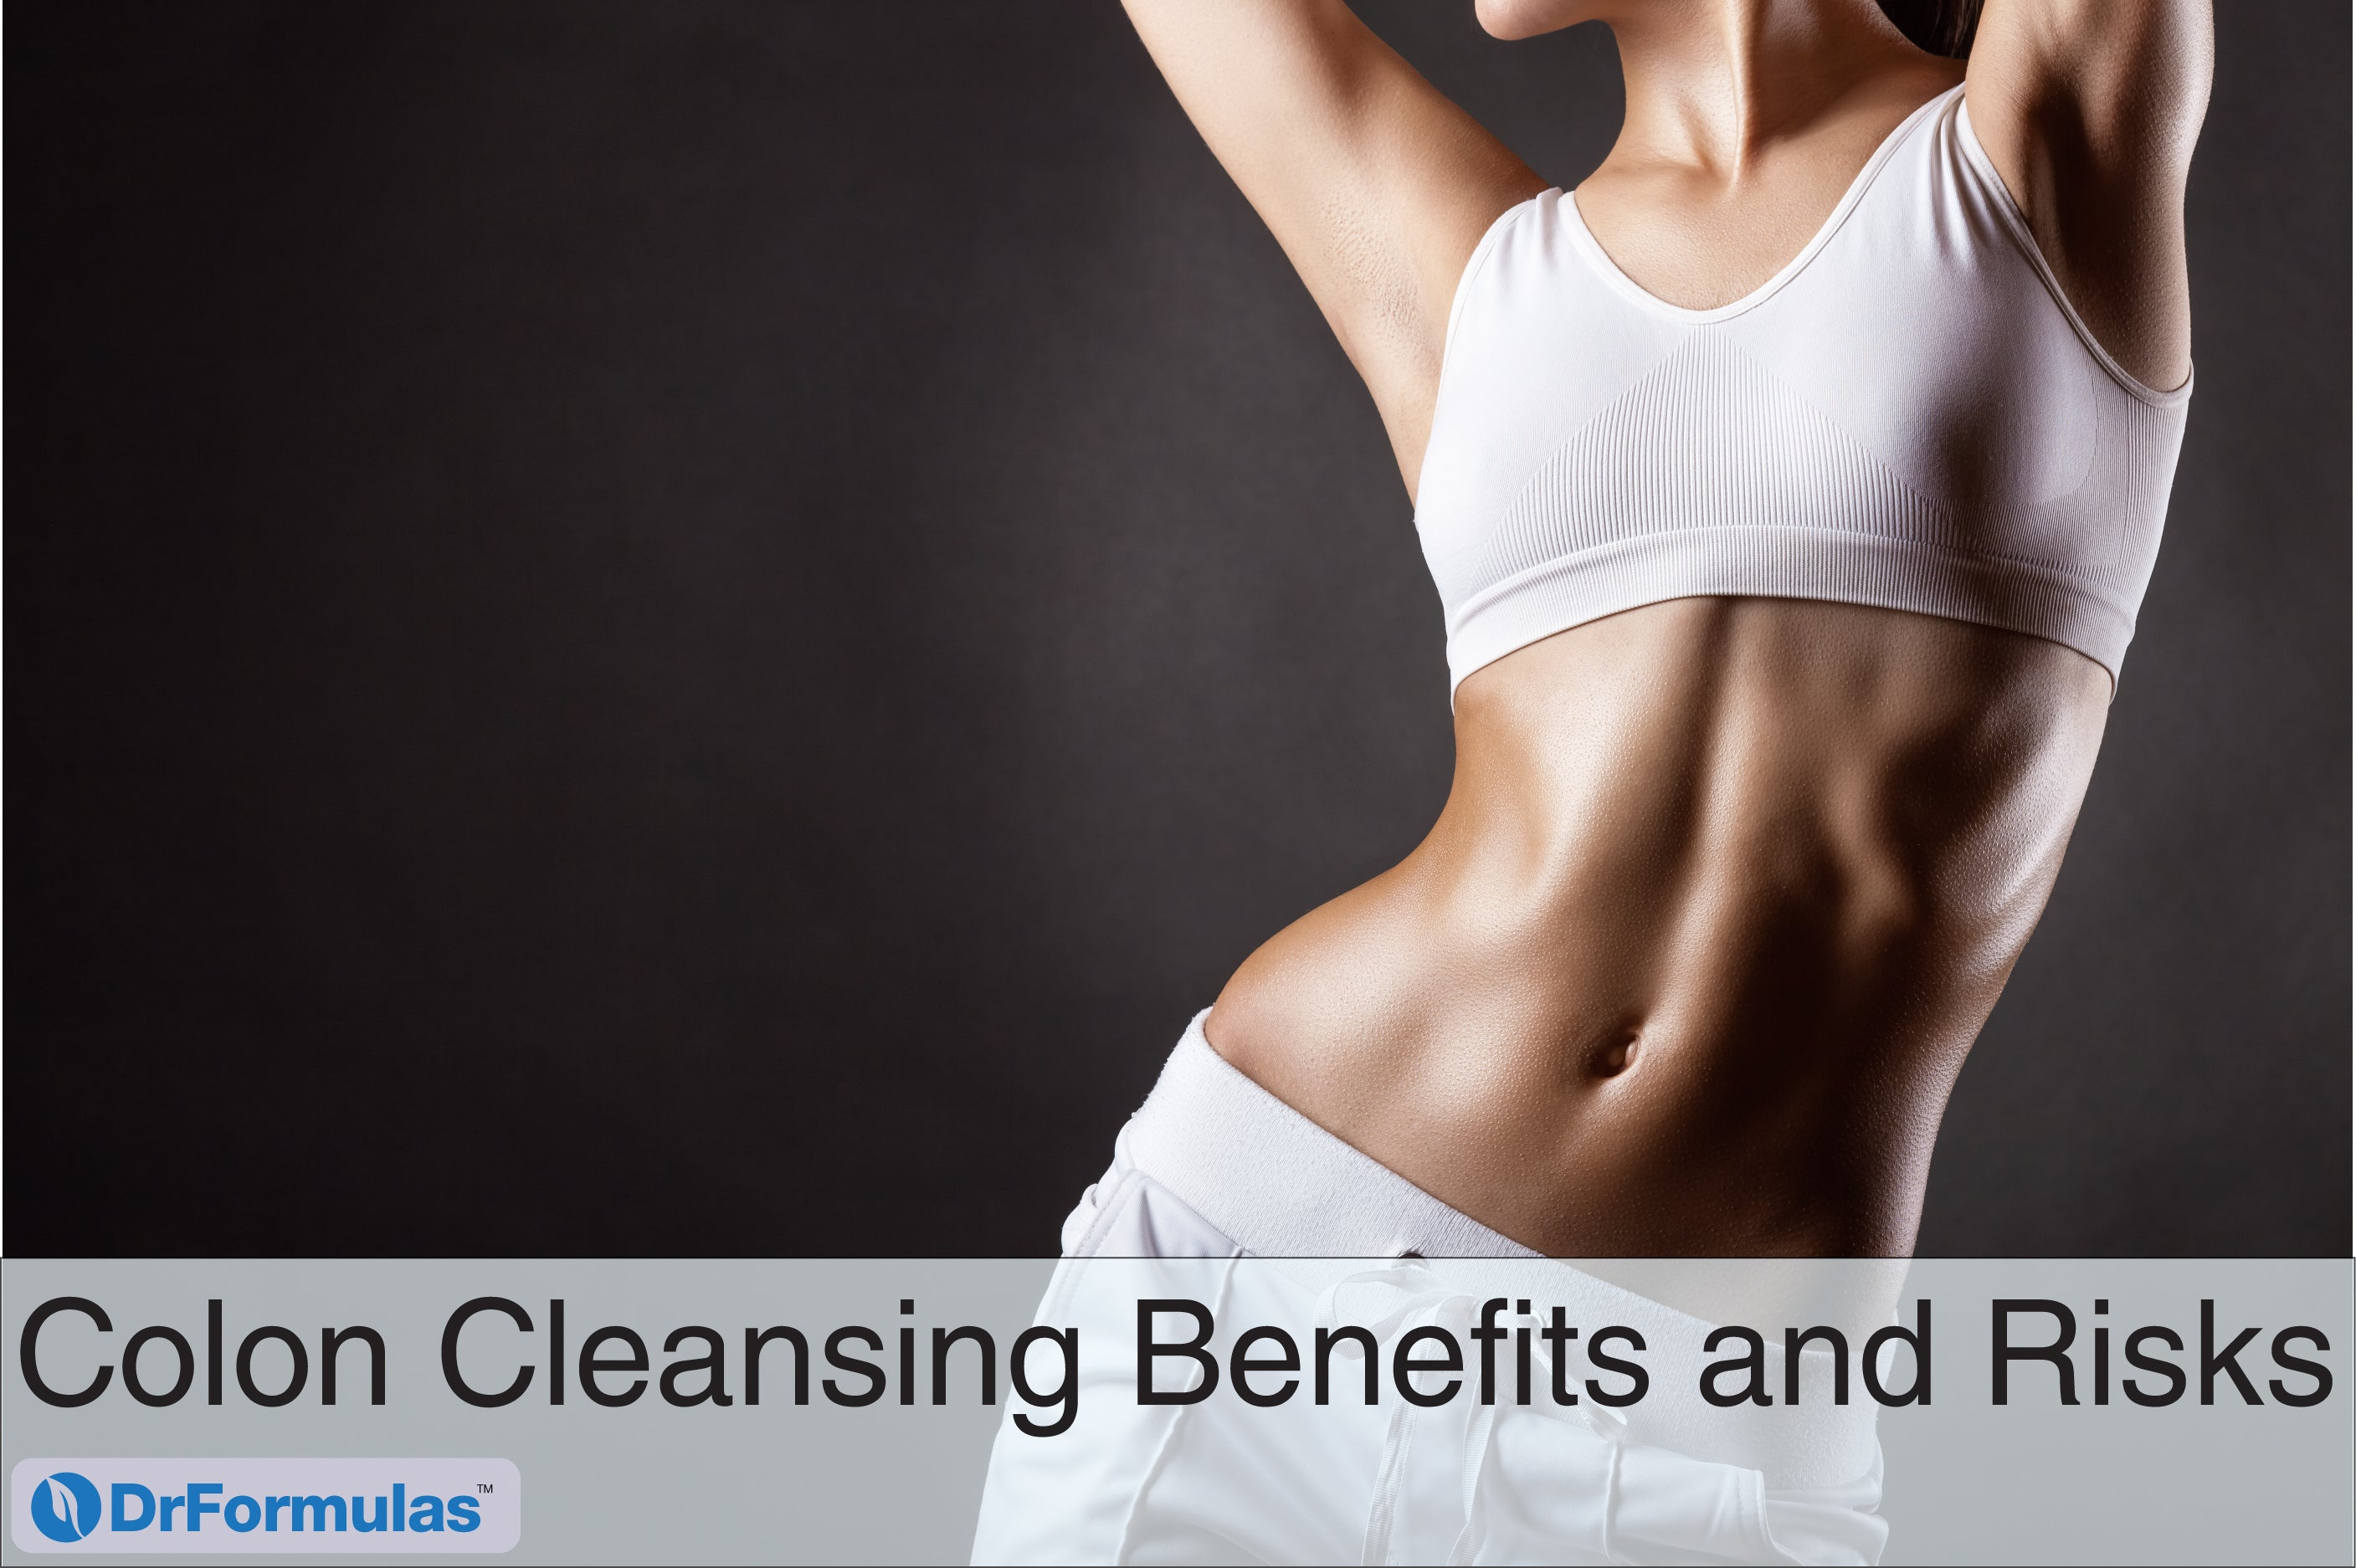 Colon Cleansing Benefits and Risks